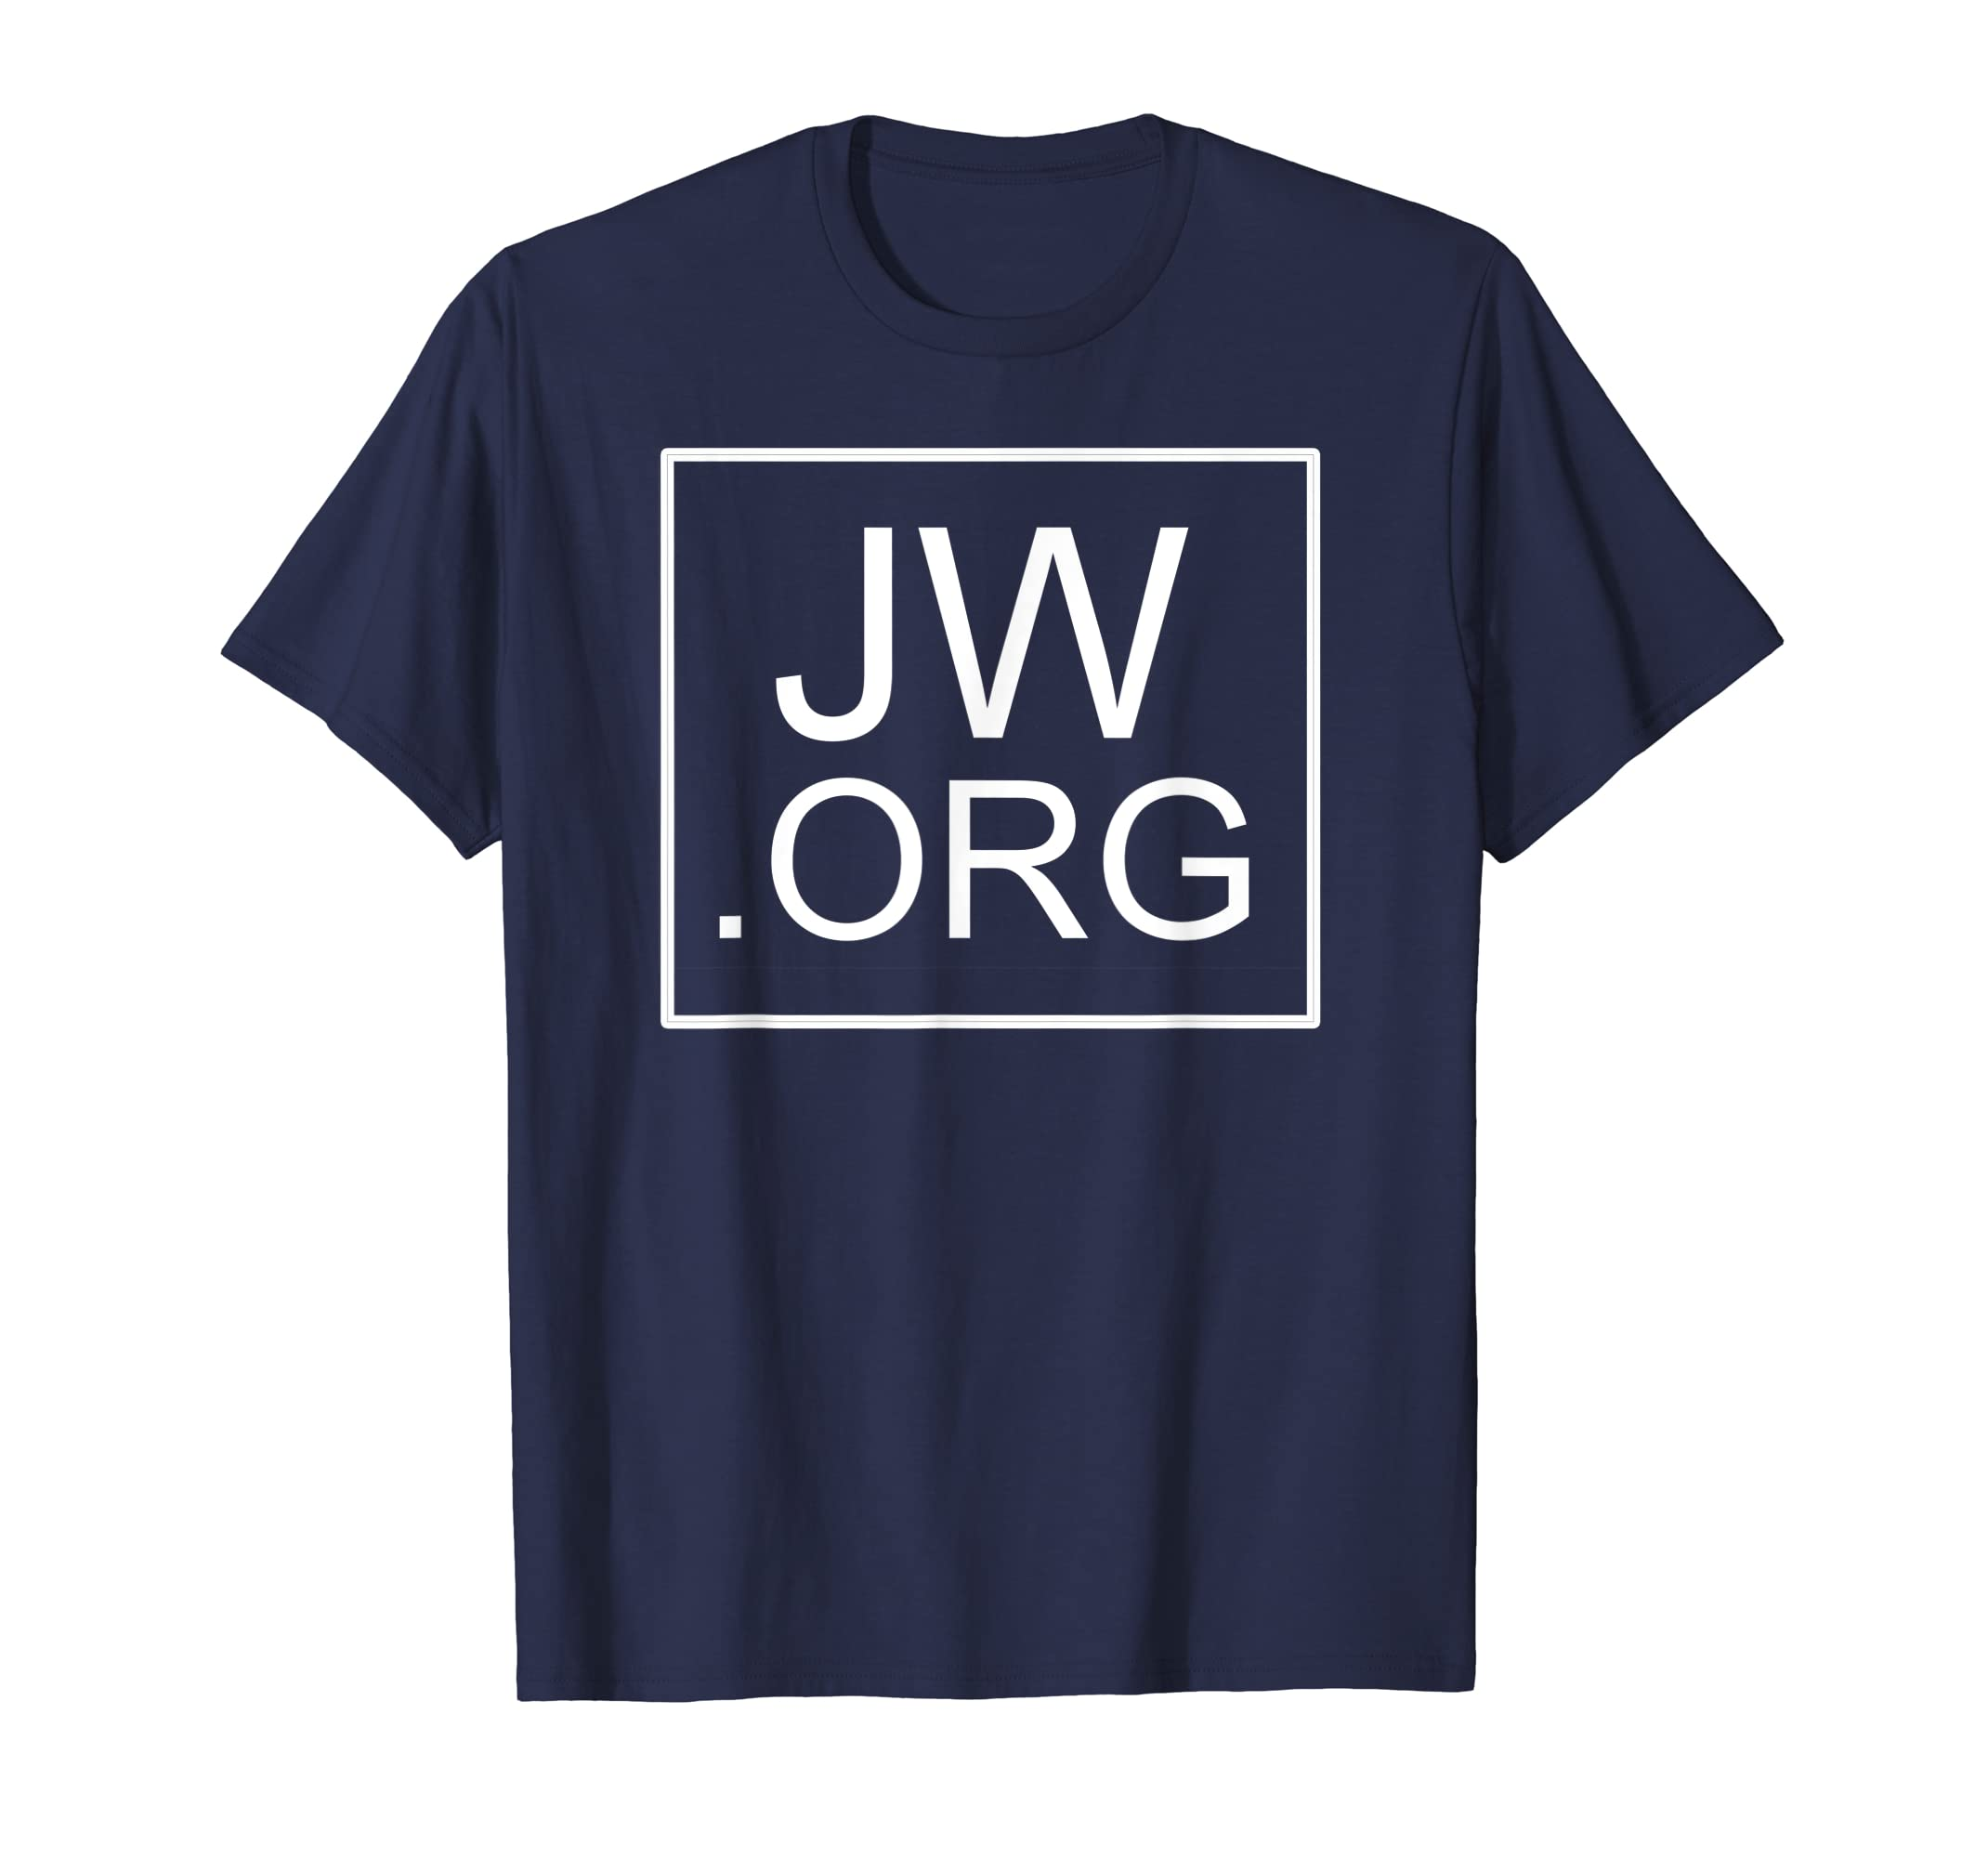 Amazon com: Jehovah Witness Gift JW ORG Shirt for Witnessing